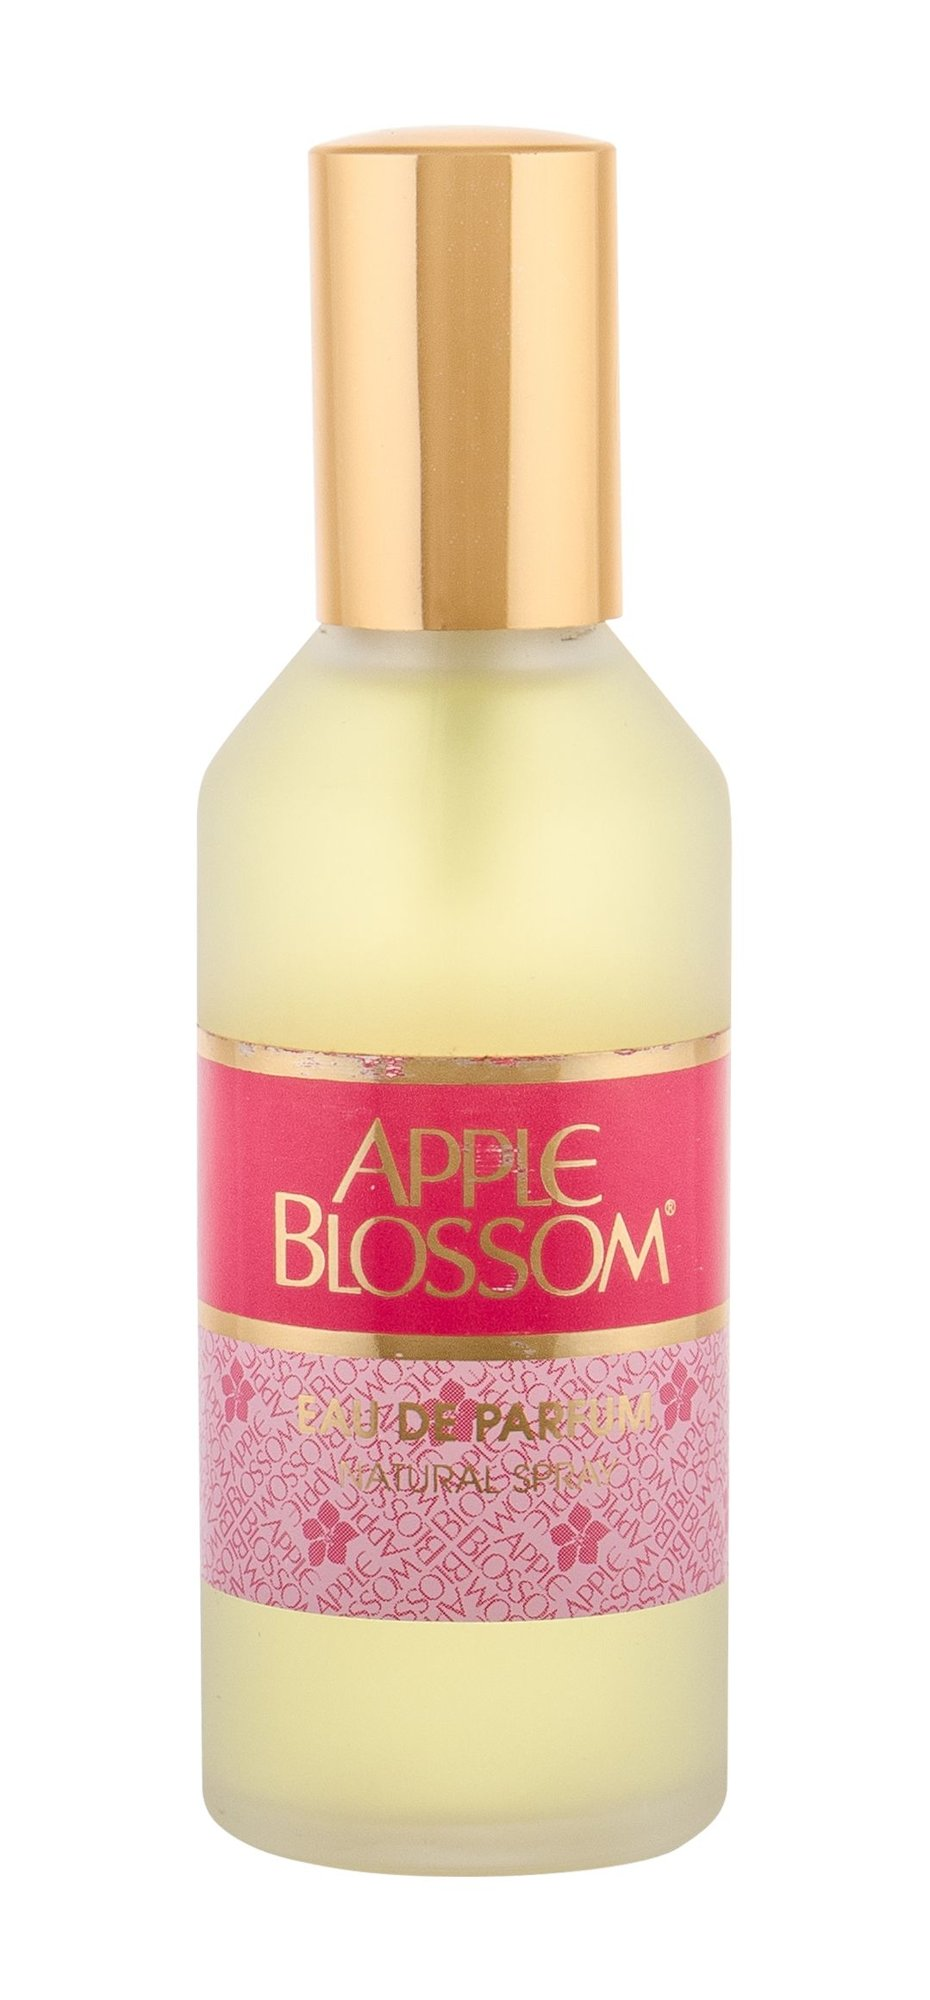 Kent Cosmetics Limited Apple Blossom